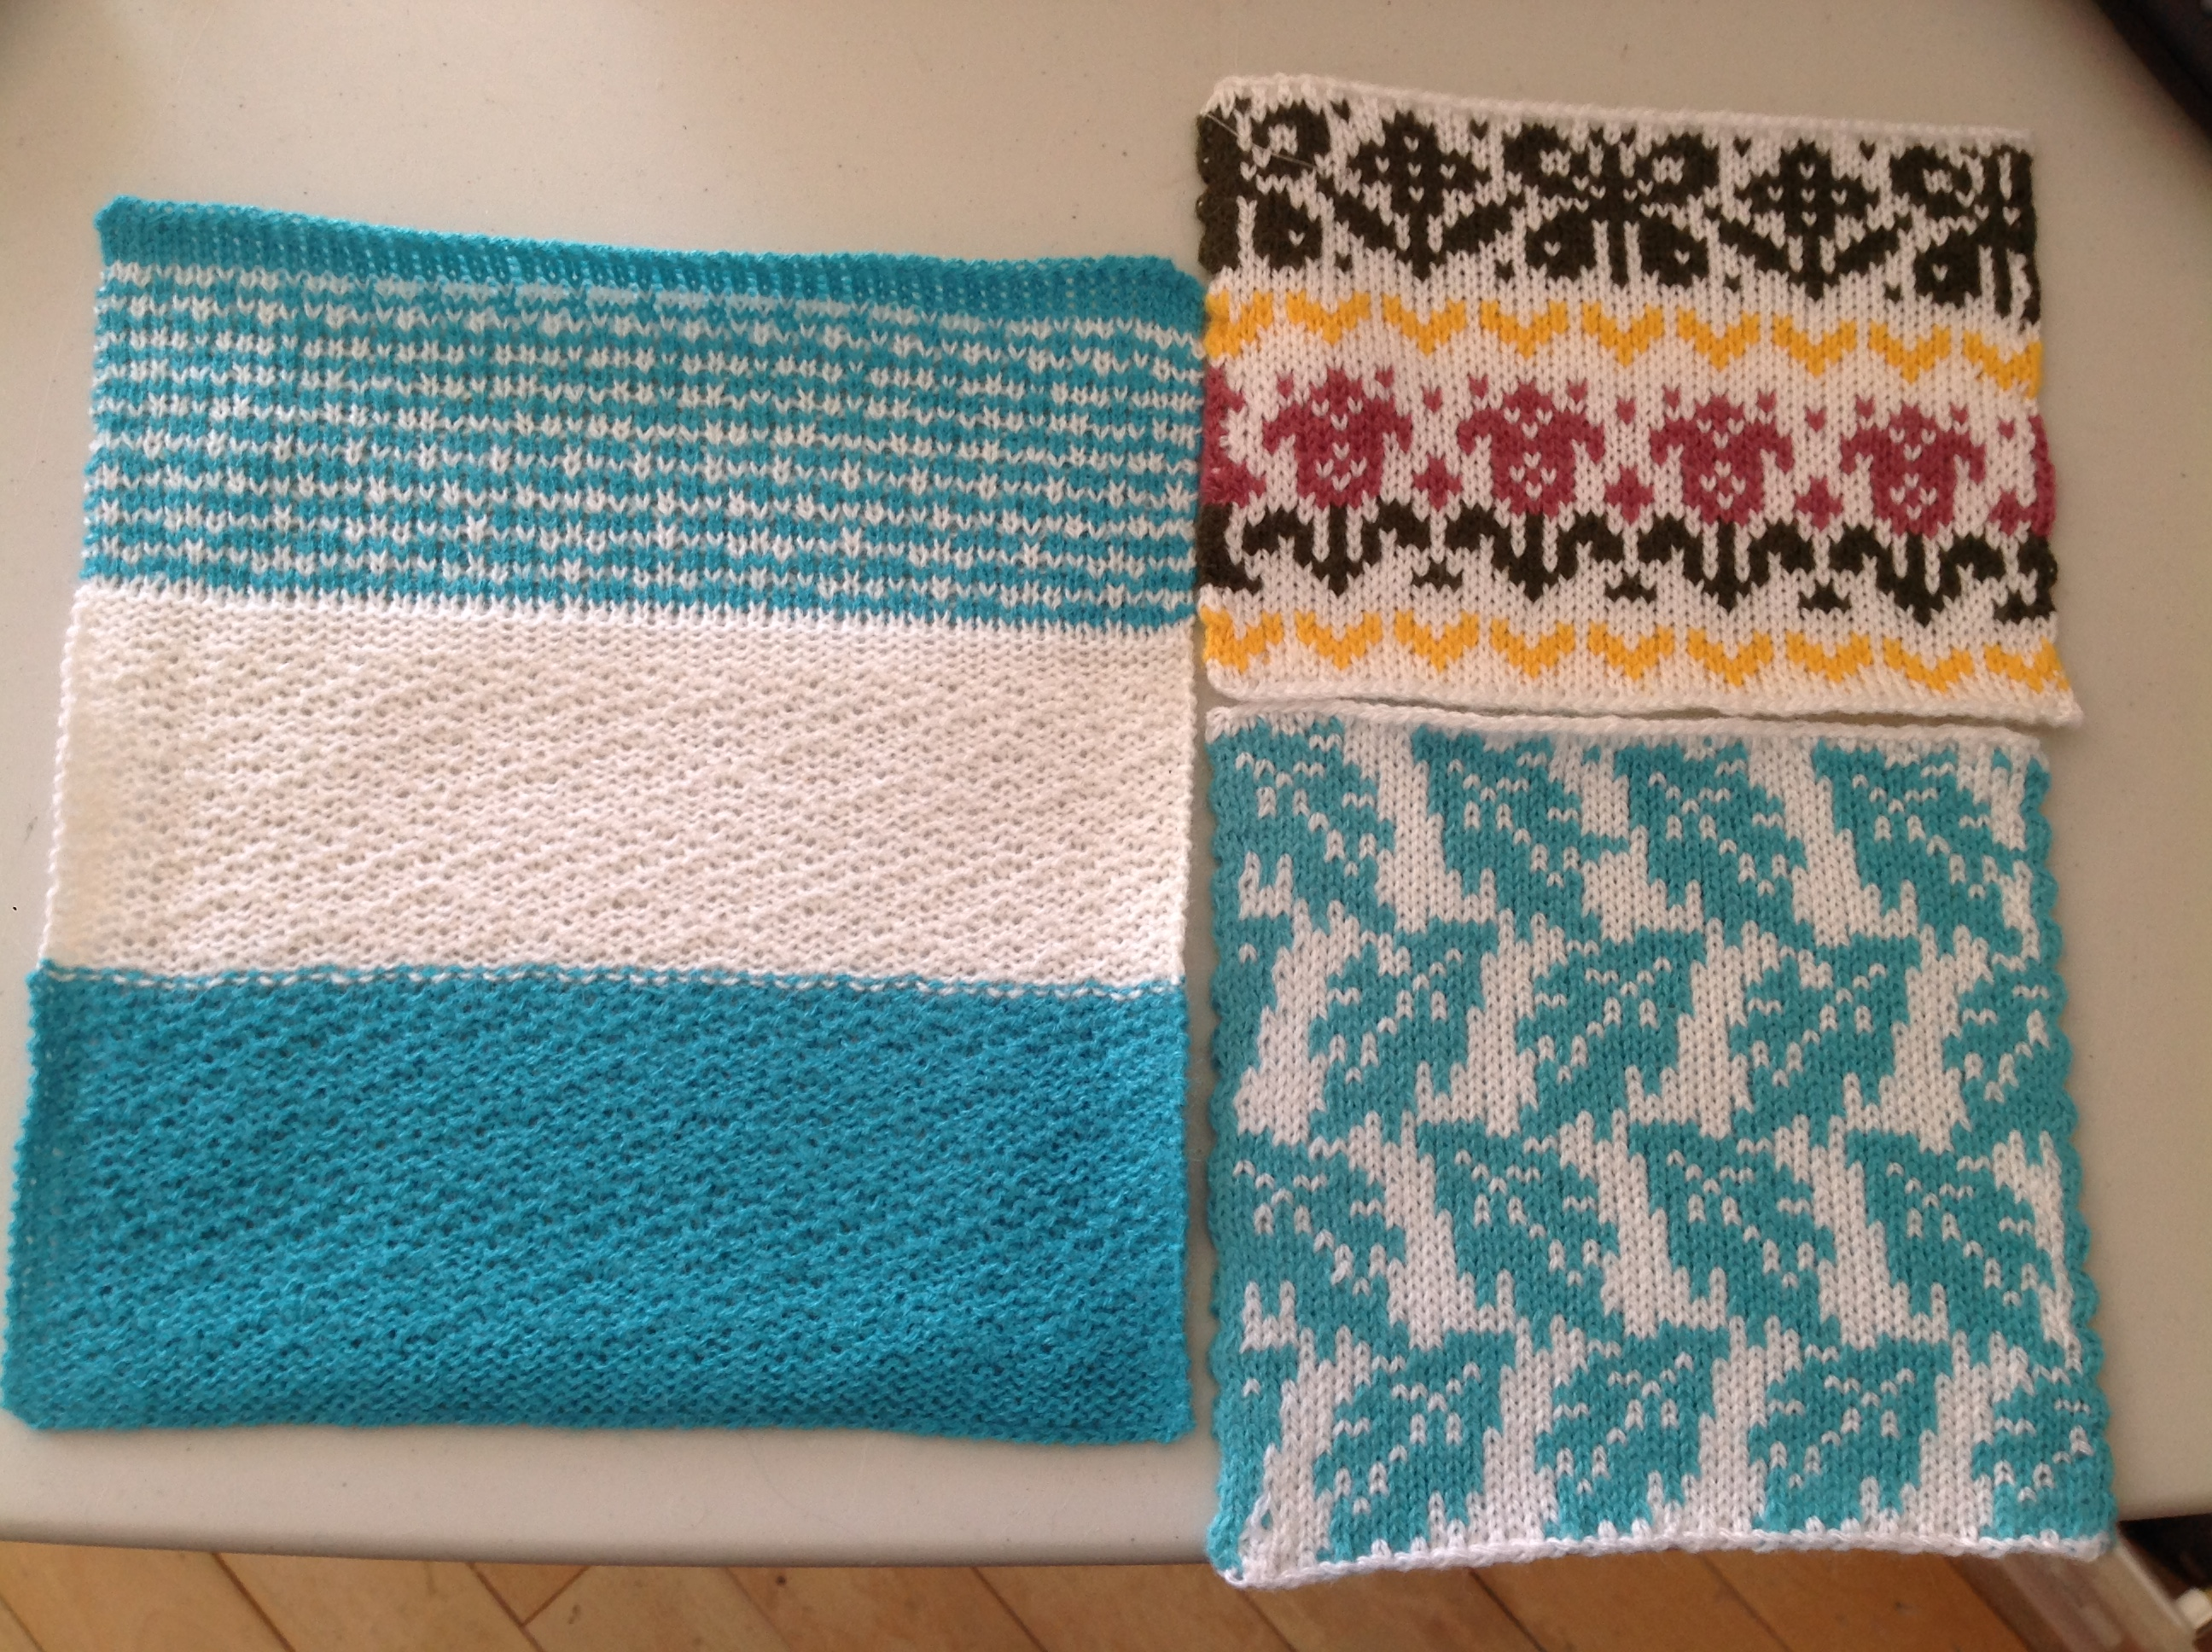 Knitting machine patterns and textures (Singer or Brother knitting ...